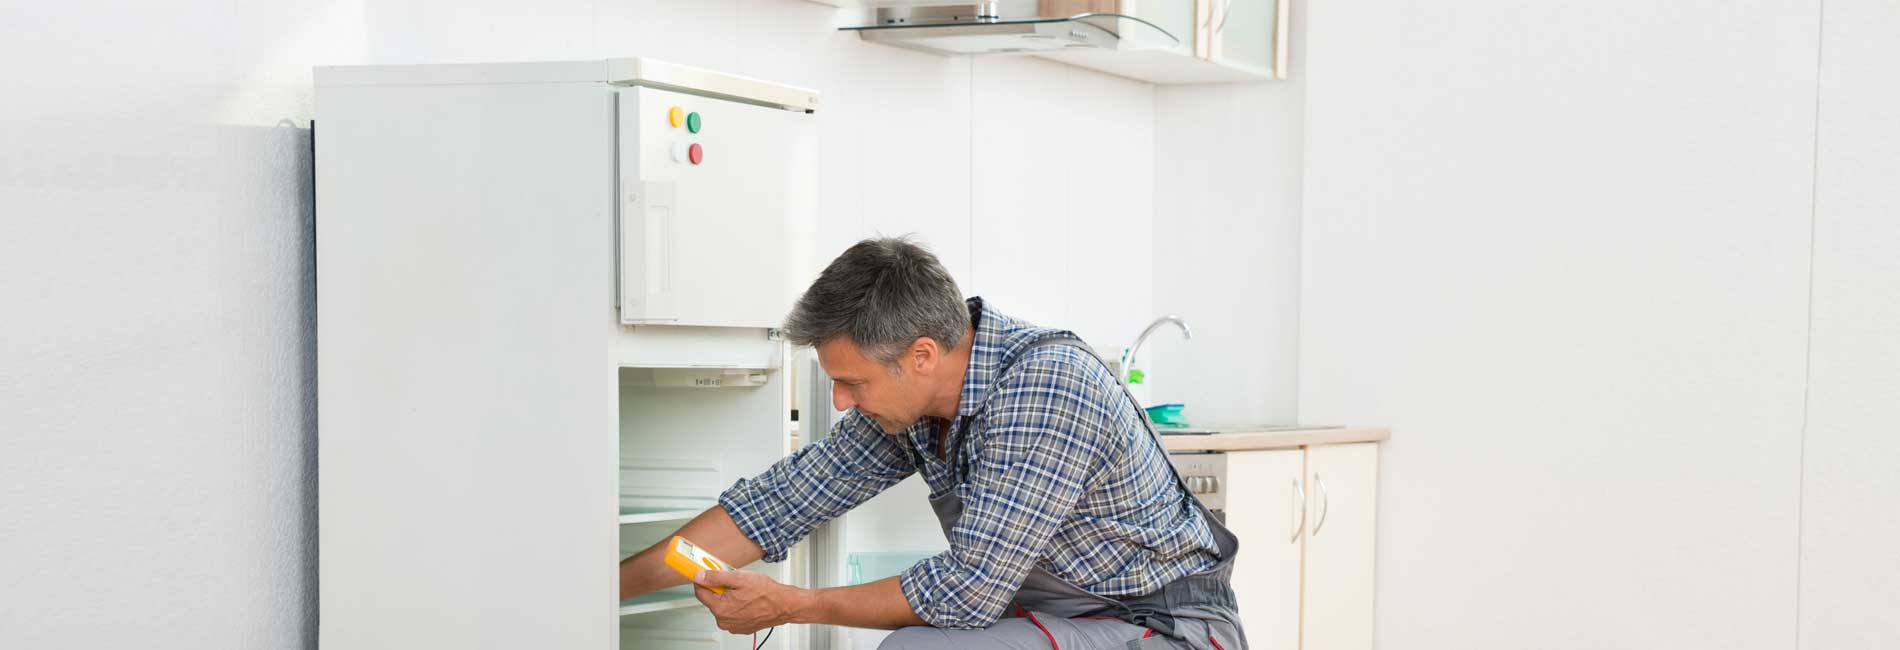 Refrigerator Repair in Mannady